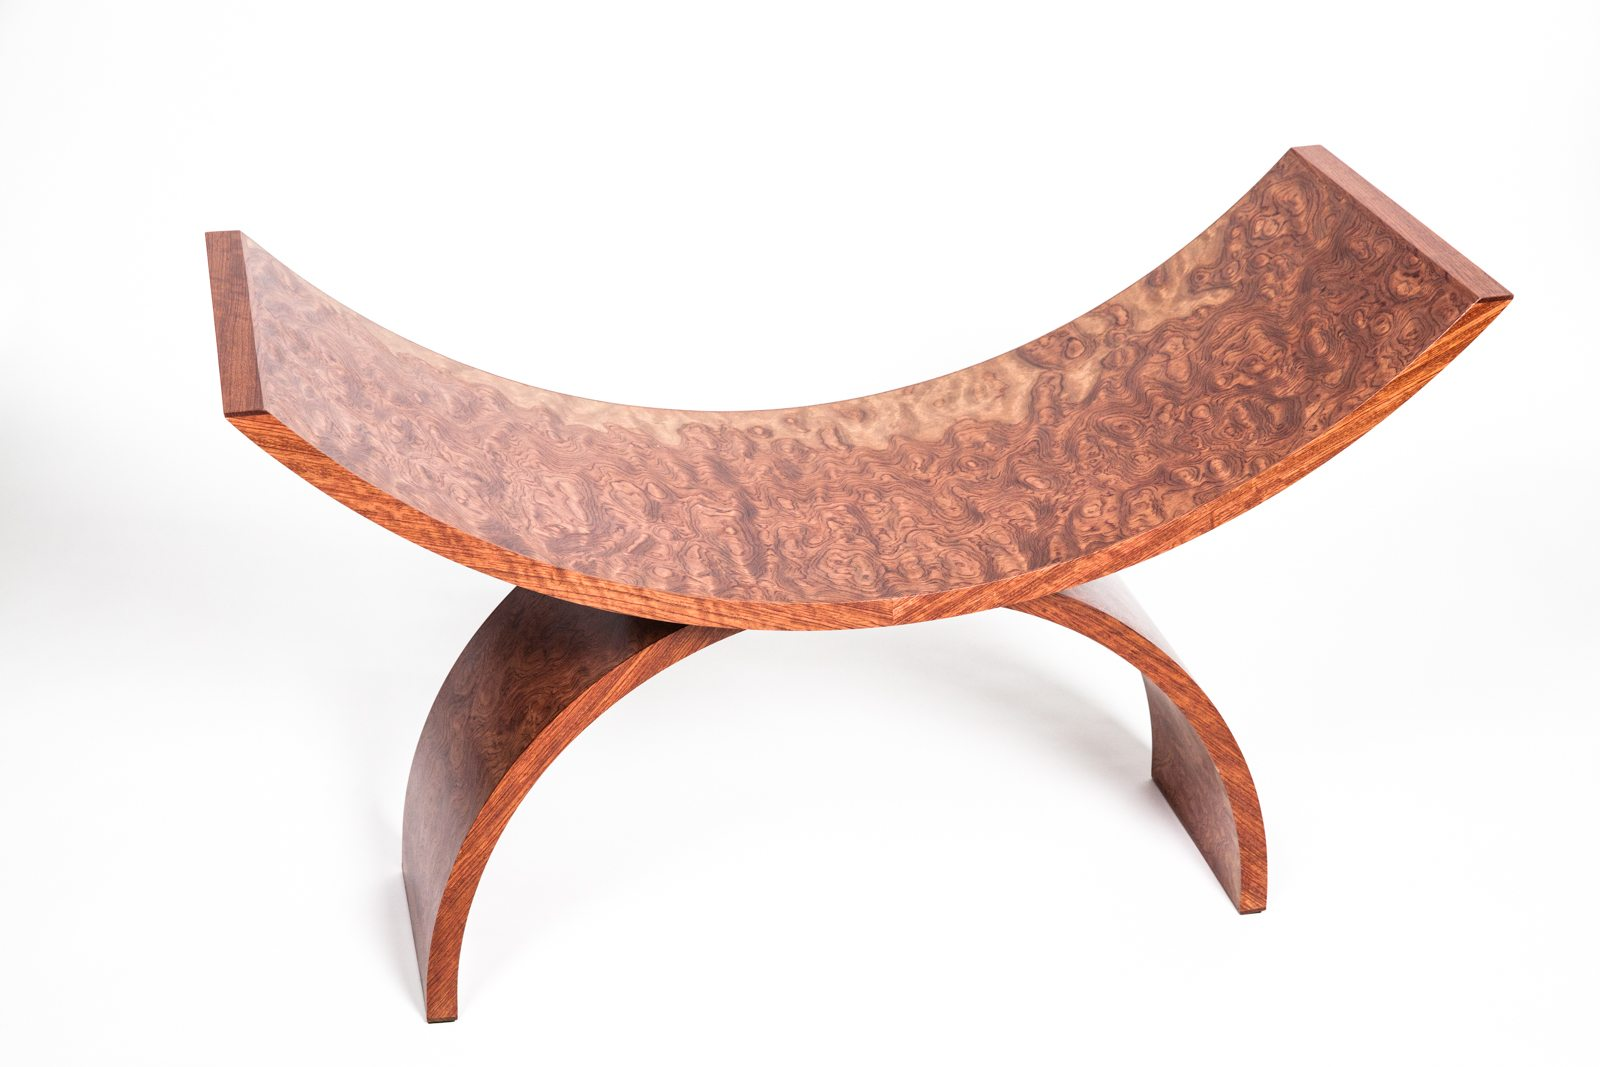 Bubinga Veneer | STUDIORossi | Custom Wood Furniture